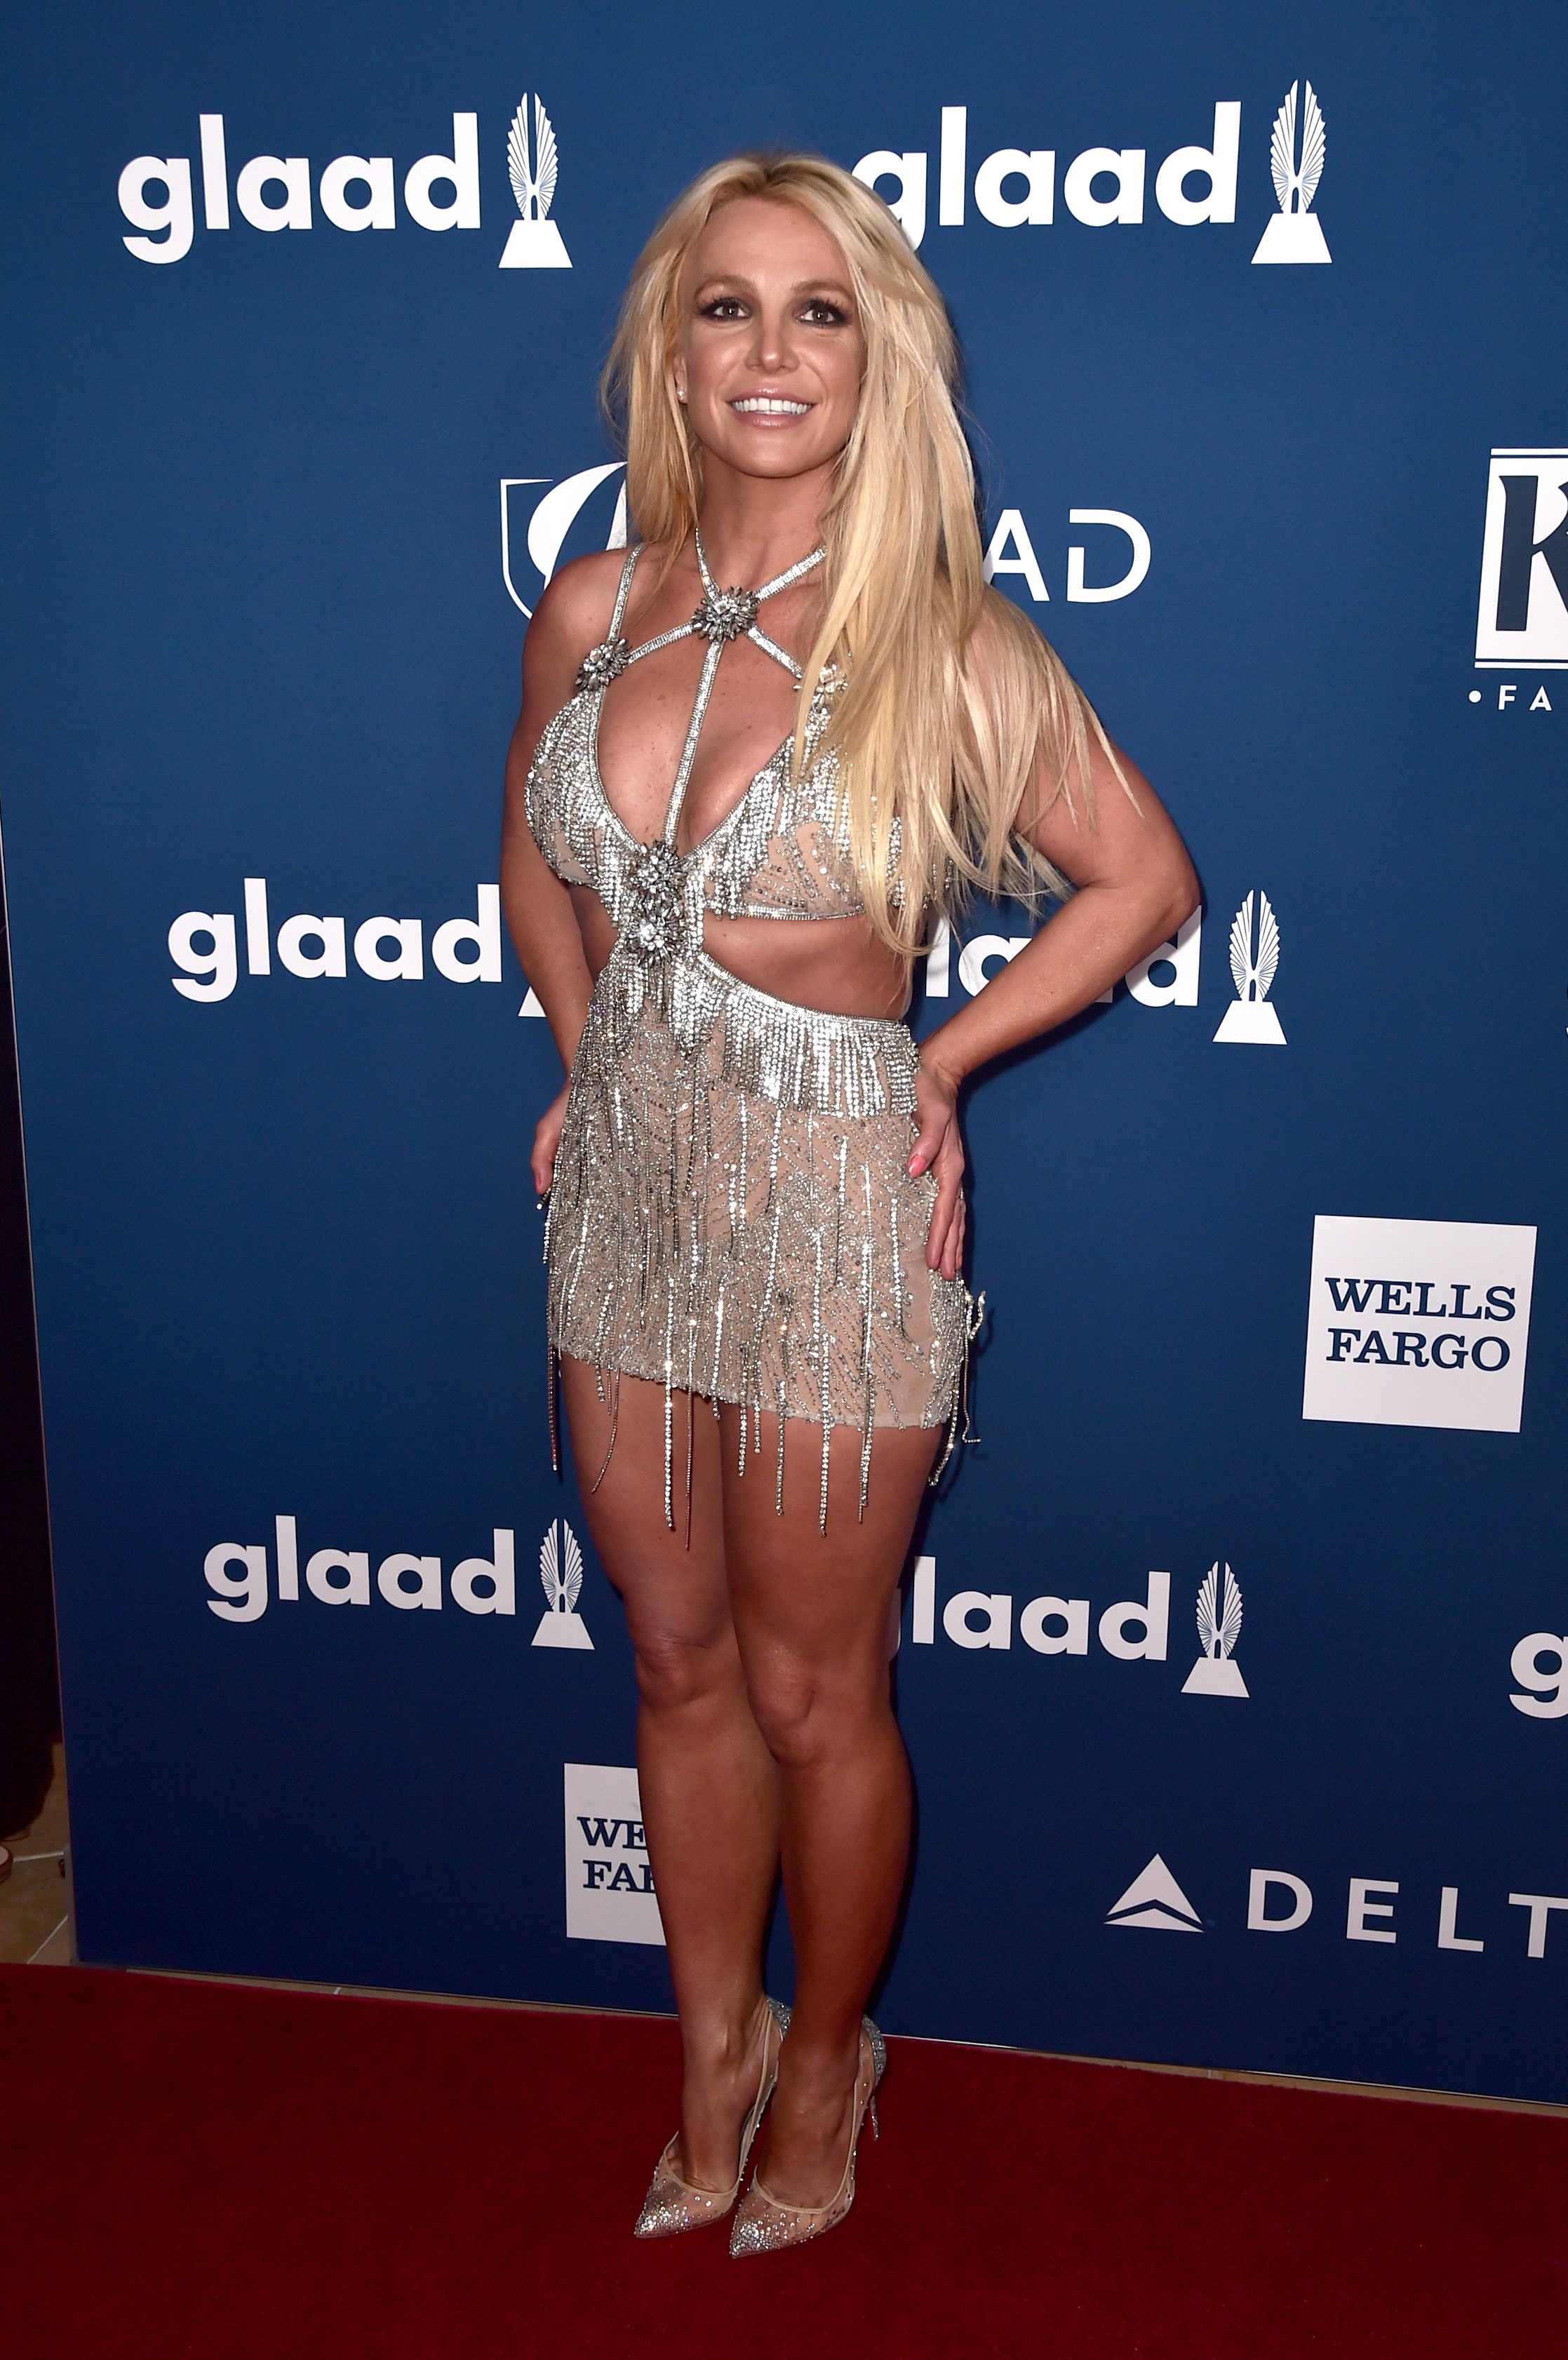 Britney-Spears-Dazzles-In-A-Sparkling-Minidress-At-The-2018-GLAAD-Media-Awards